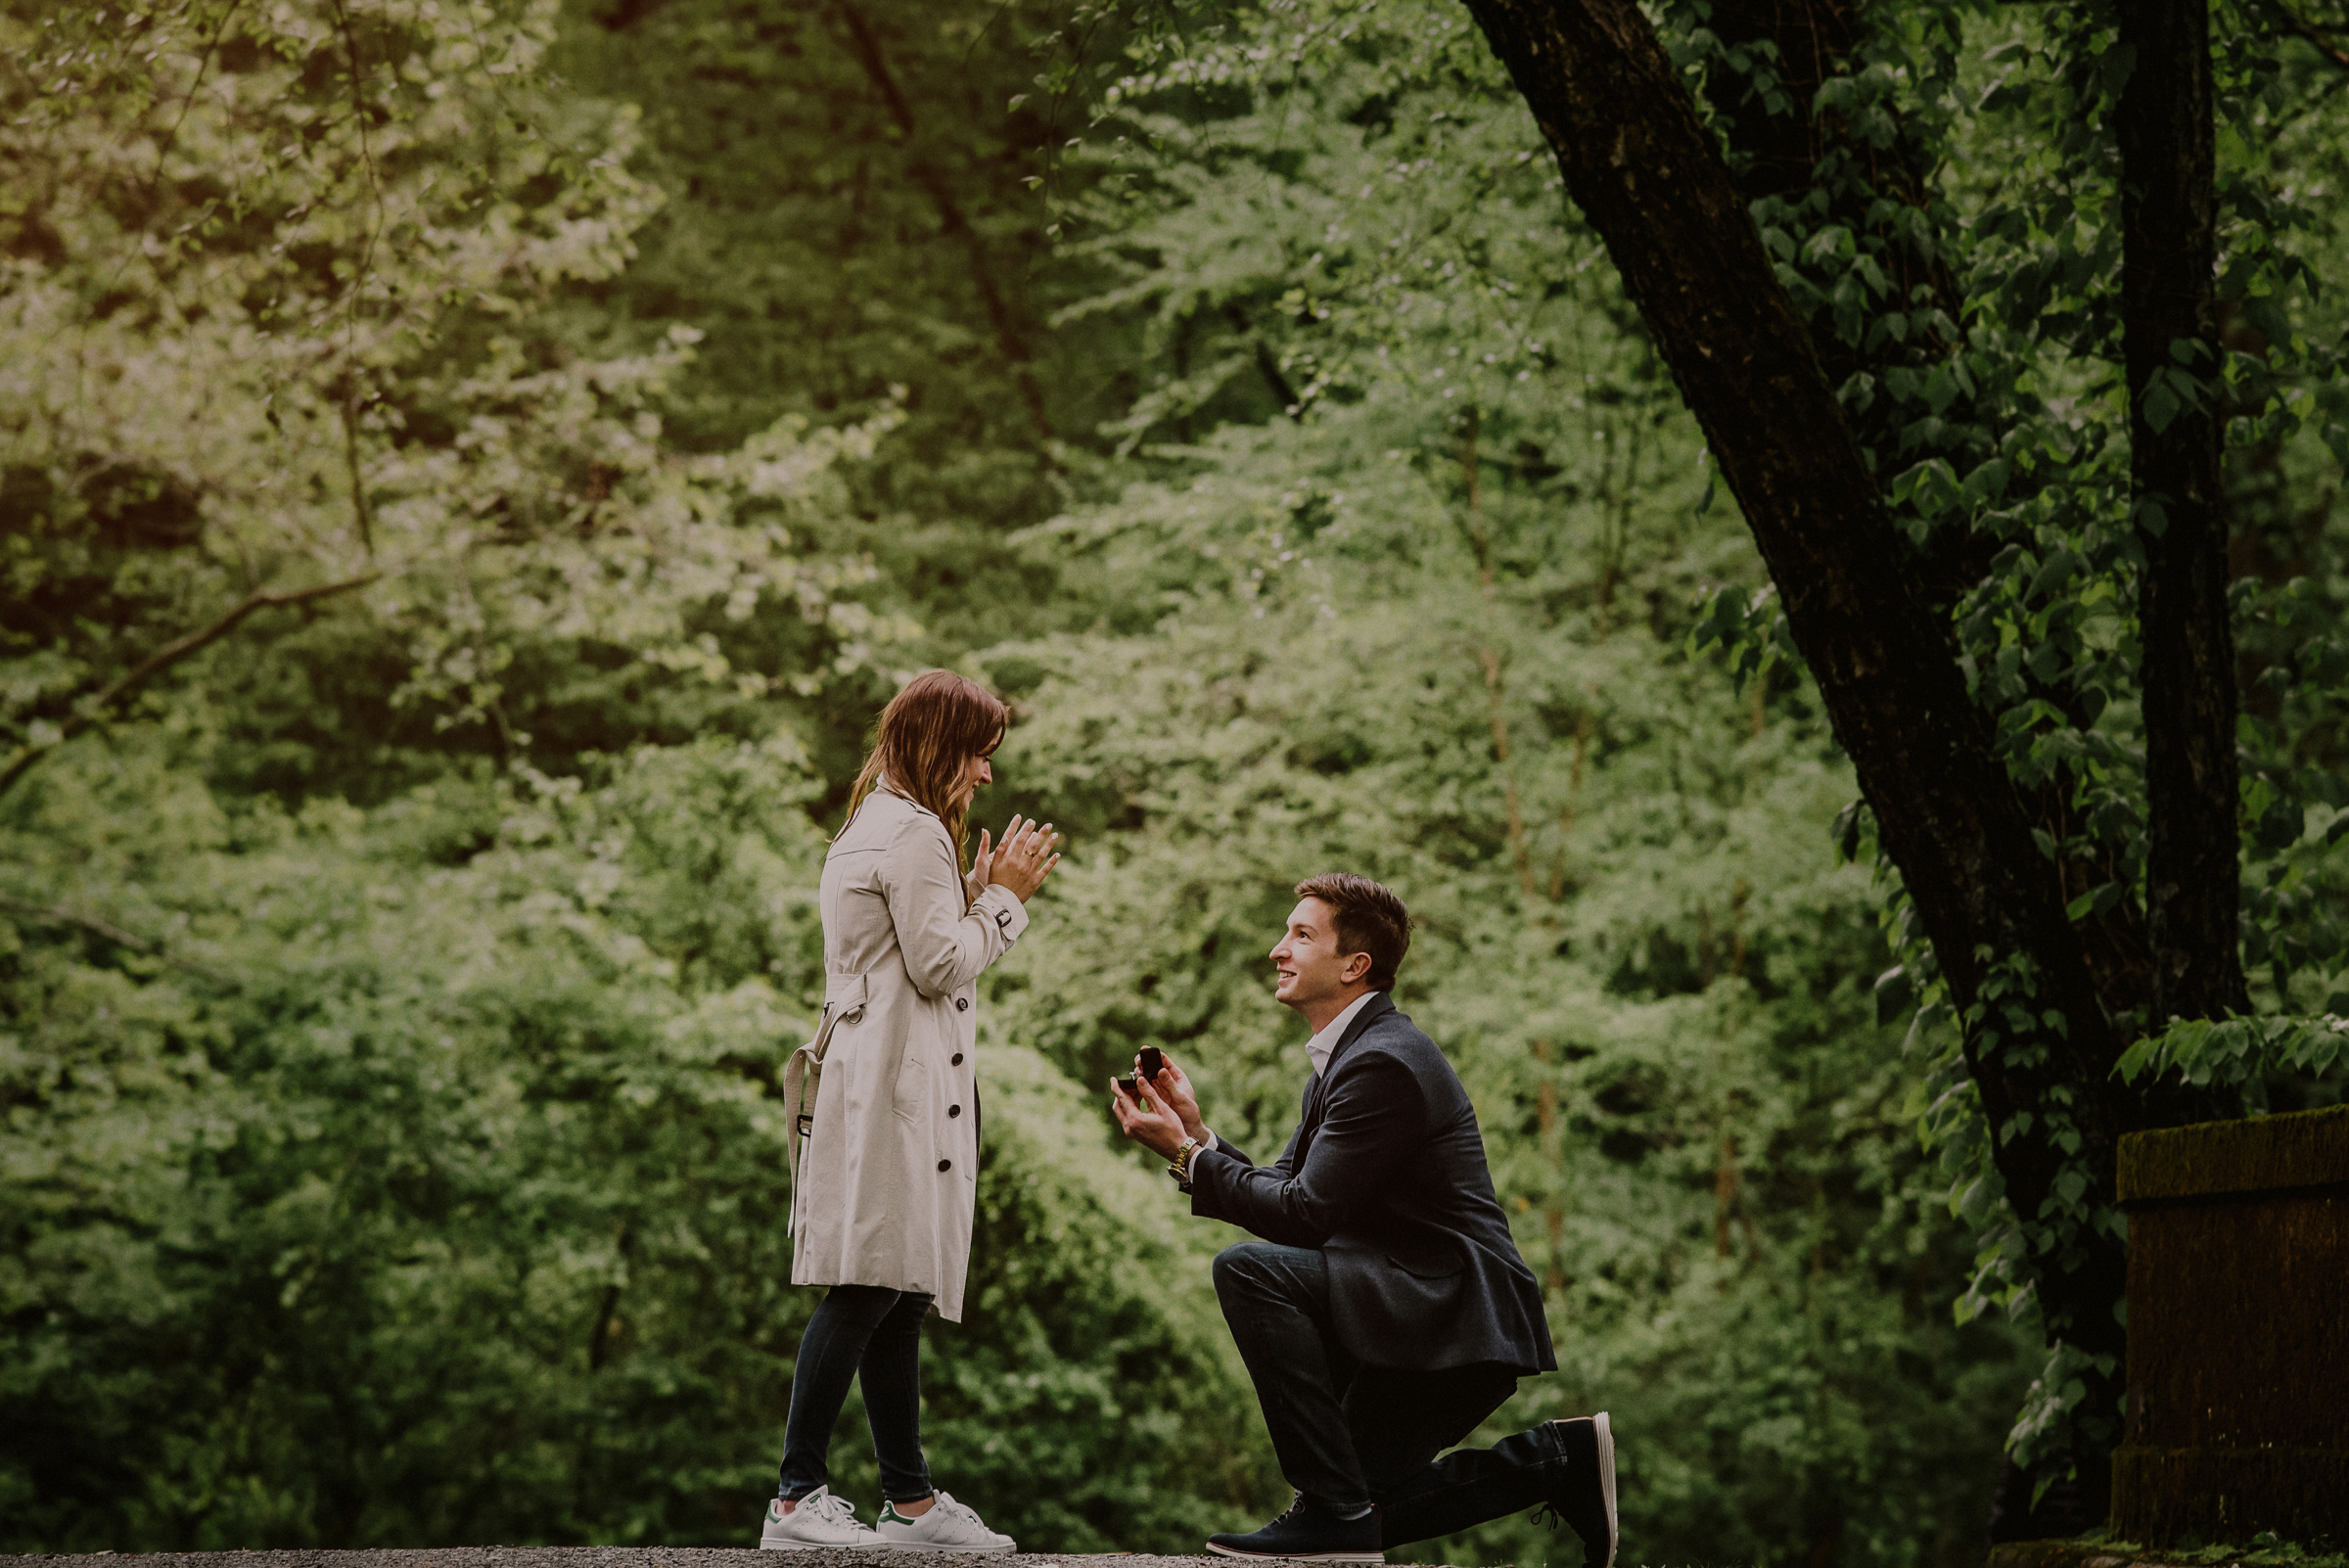 man on his knees proposing in woods